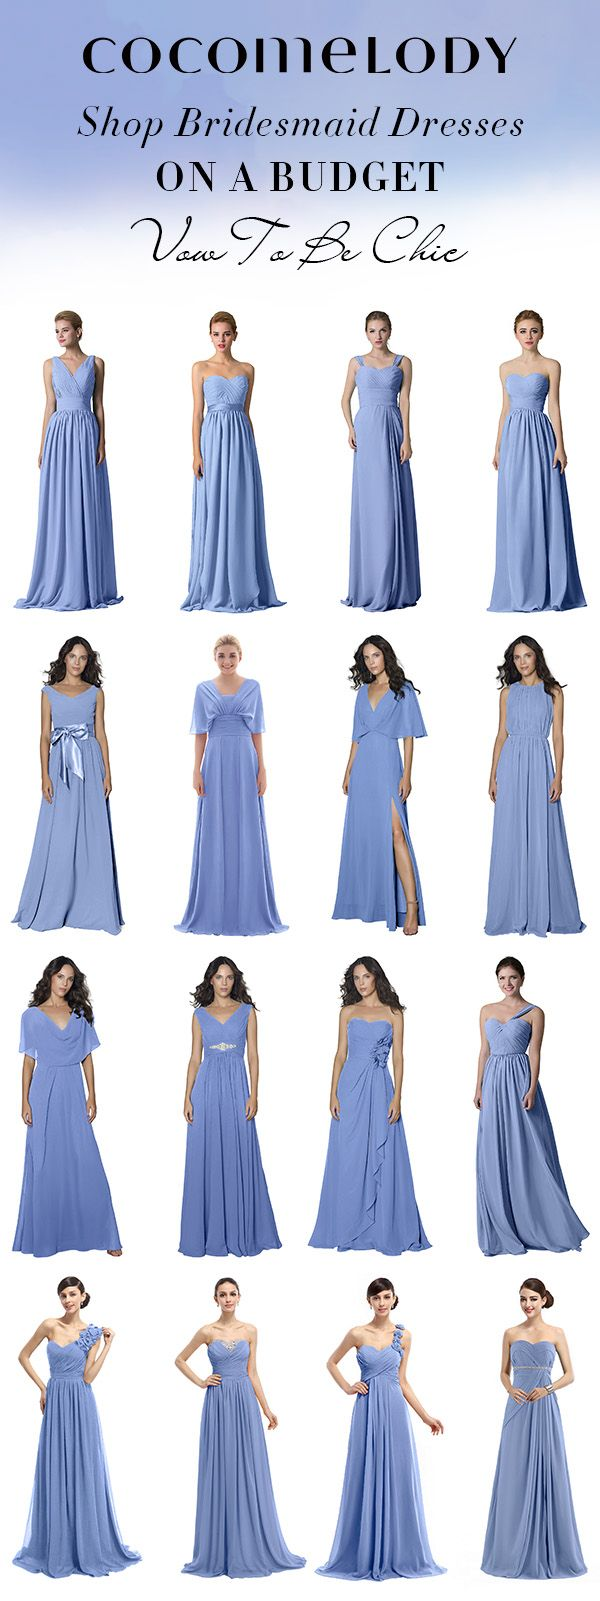 Shop Your Bridesmaid Dress On A Budget And Vow To Be Chic! #bridesmaiddresses #cocomelody #bluedresses #customdresses